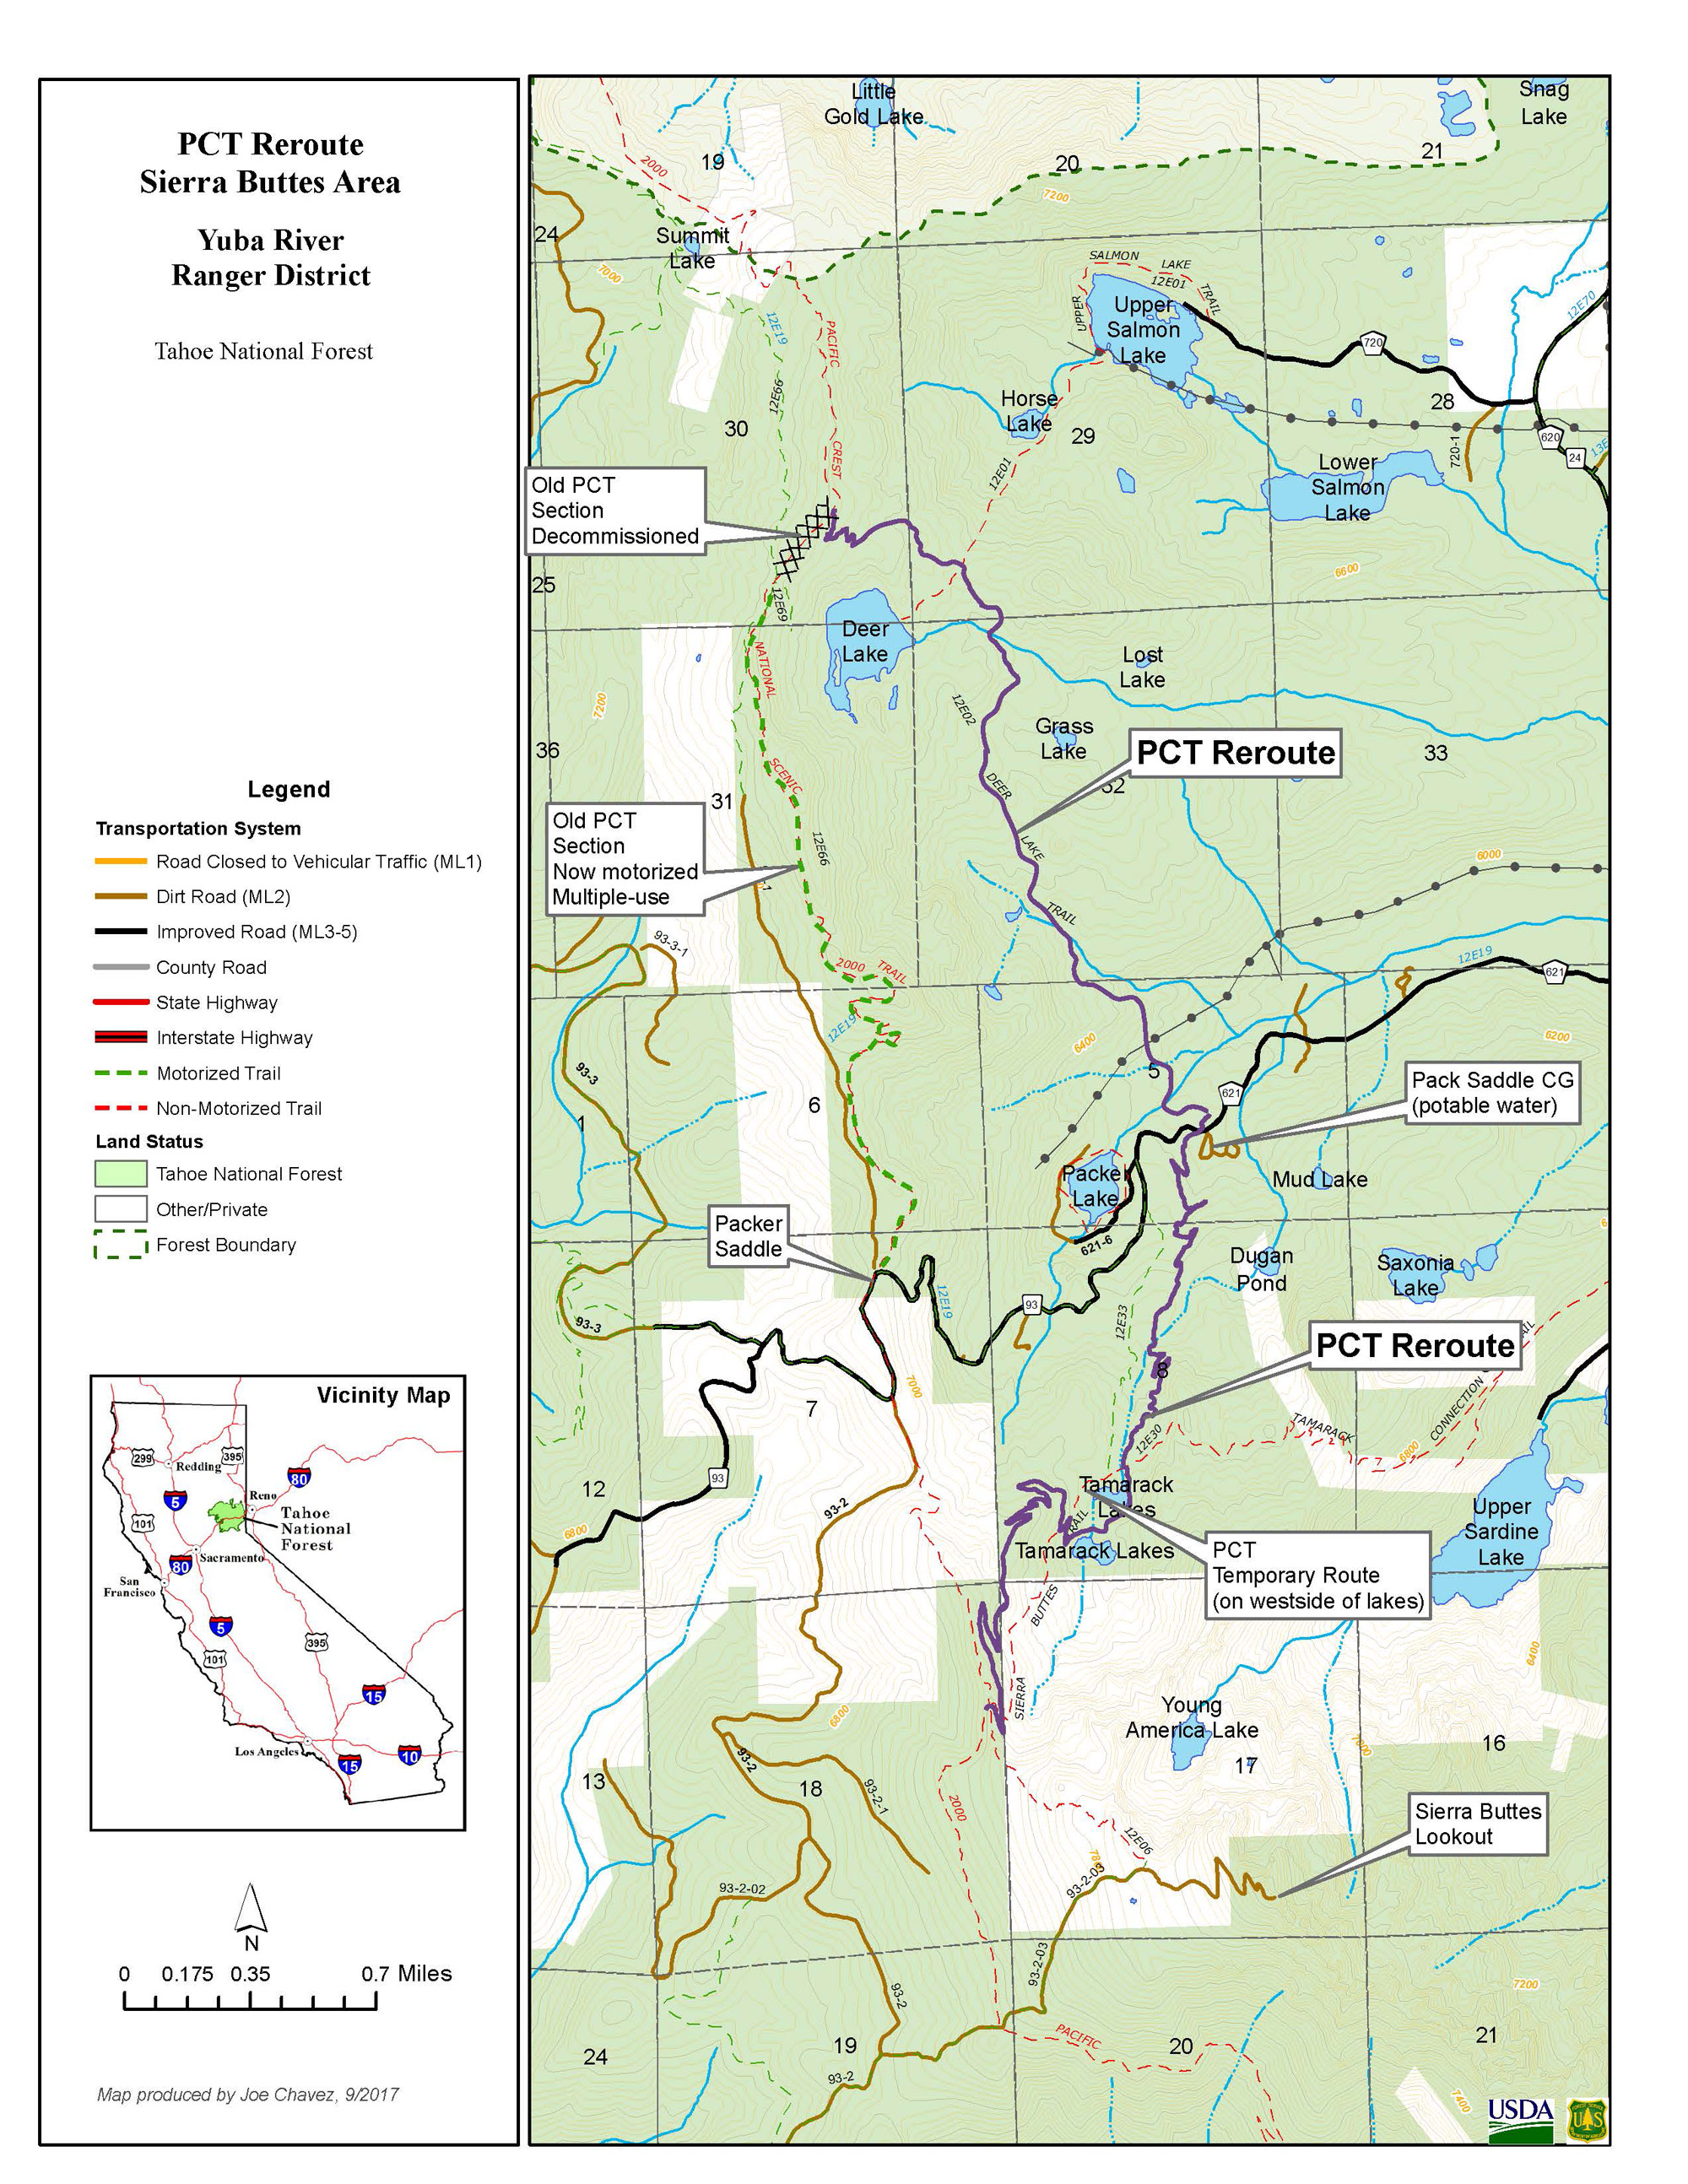 map of the pacific crest trail in the sierra buttes . a new section of the pacific crest trail is open in the sierra